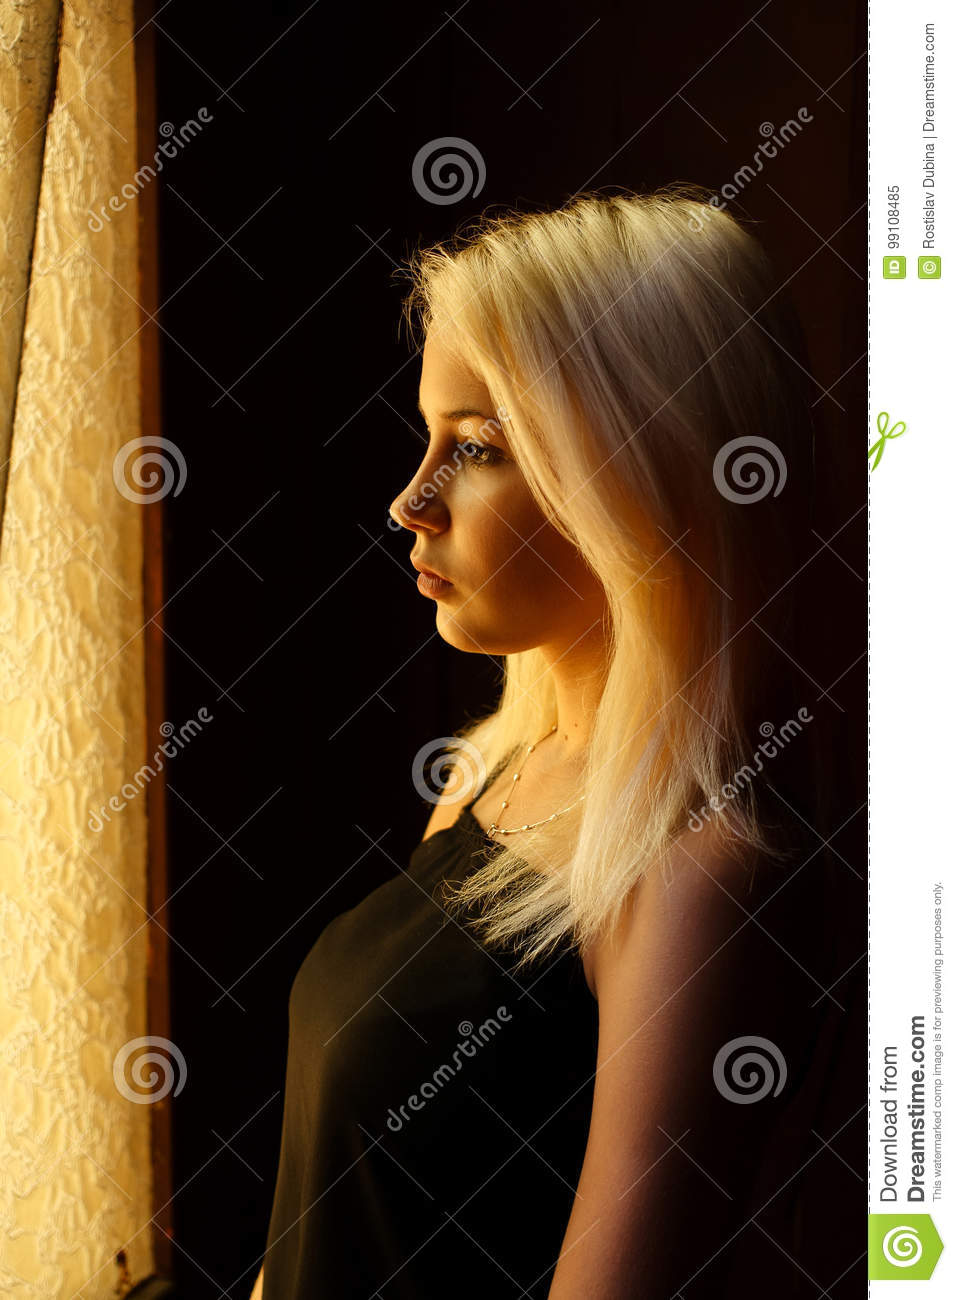 Beautiful young blonde girl. Dramatic portrait of a woman in the dark. Dreamy female look in twilight. Female silhouette.